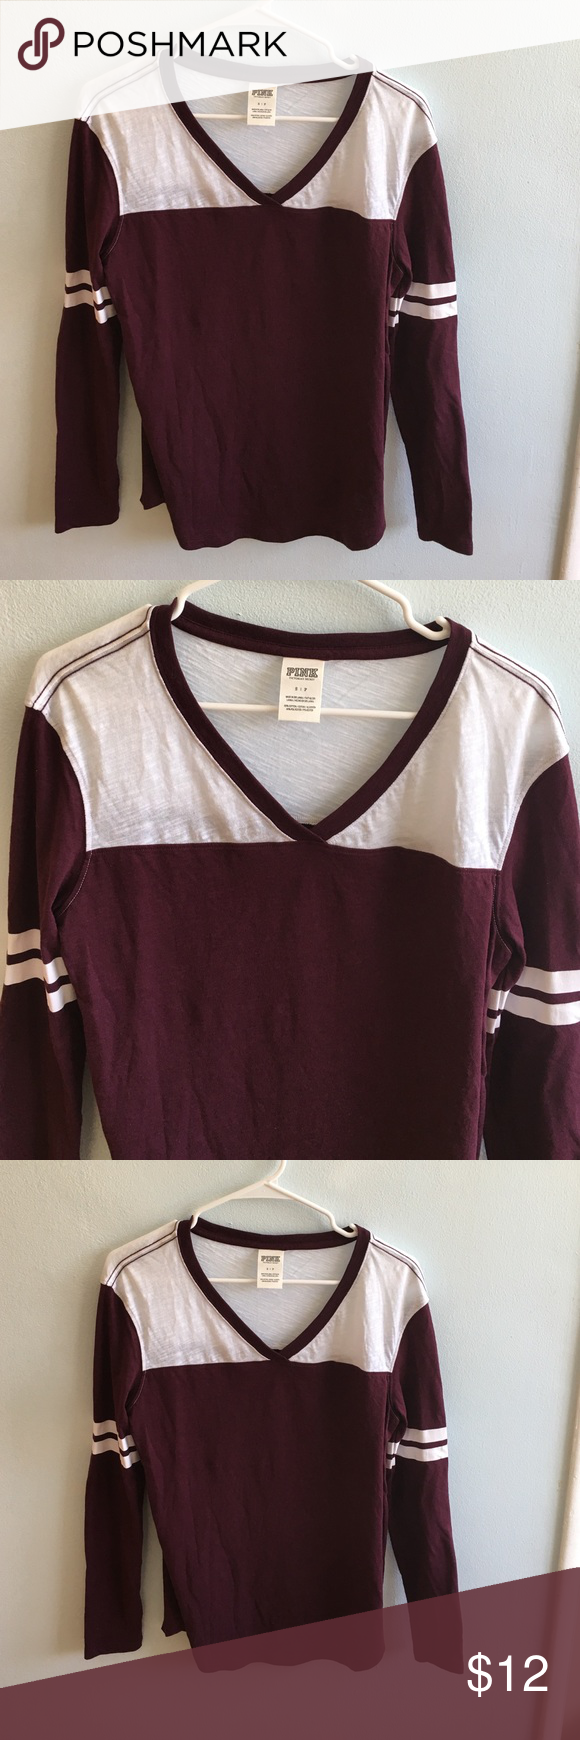 Pink shirt 🐶 Burgundy colored long sleeve shirt 😊 Only been tried on. No tags but you can tell it's brand new. It's a bit of wrinkles because it was folded and put away for a while PINK Victoria's Secret Tops Tees - Long Sleeve